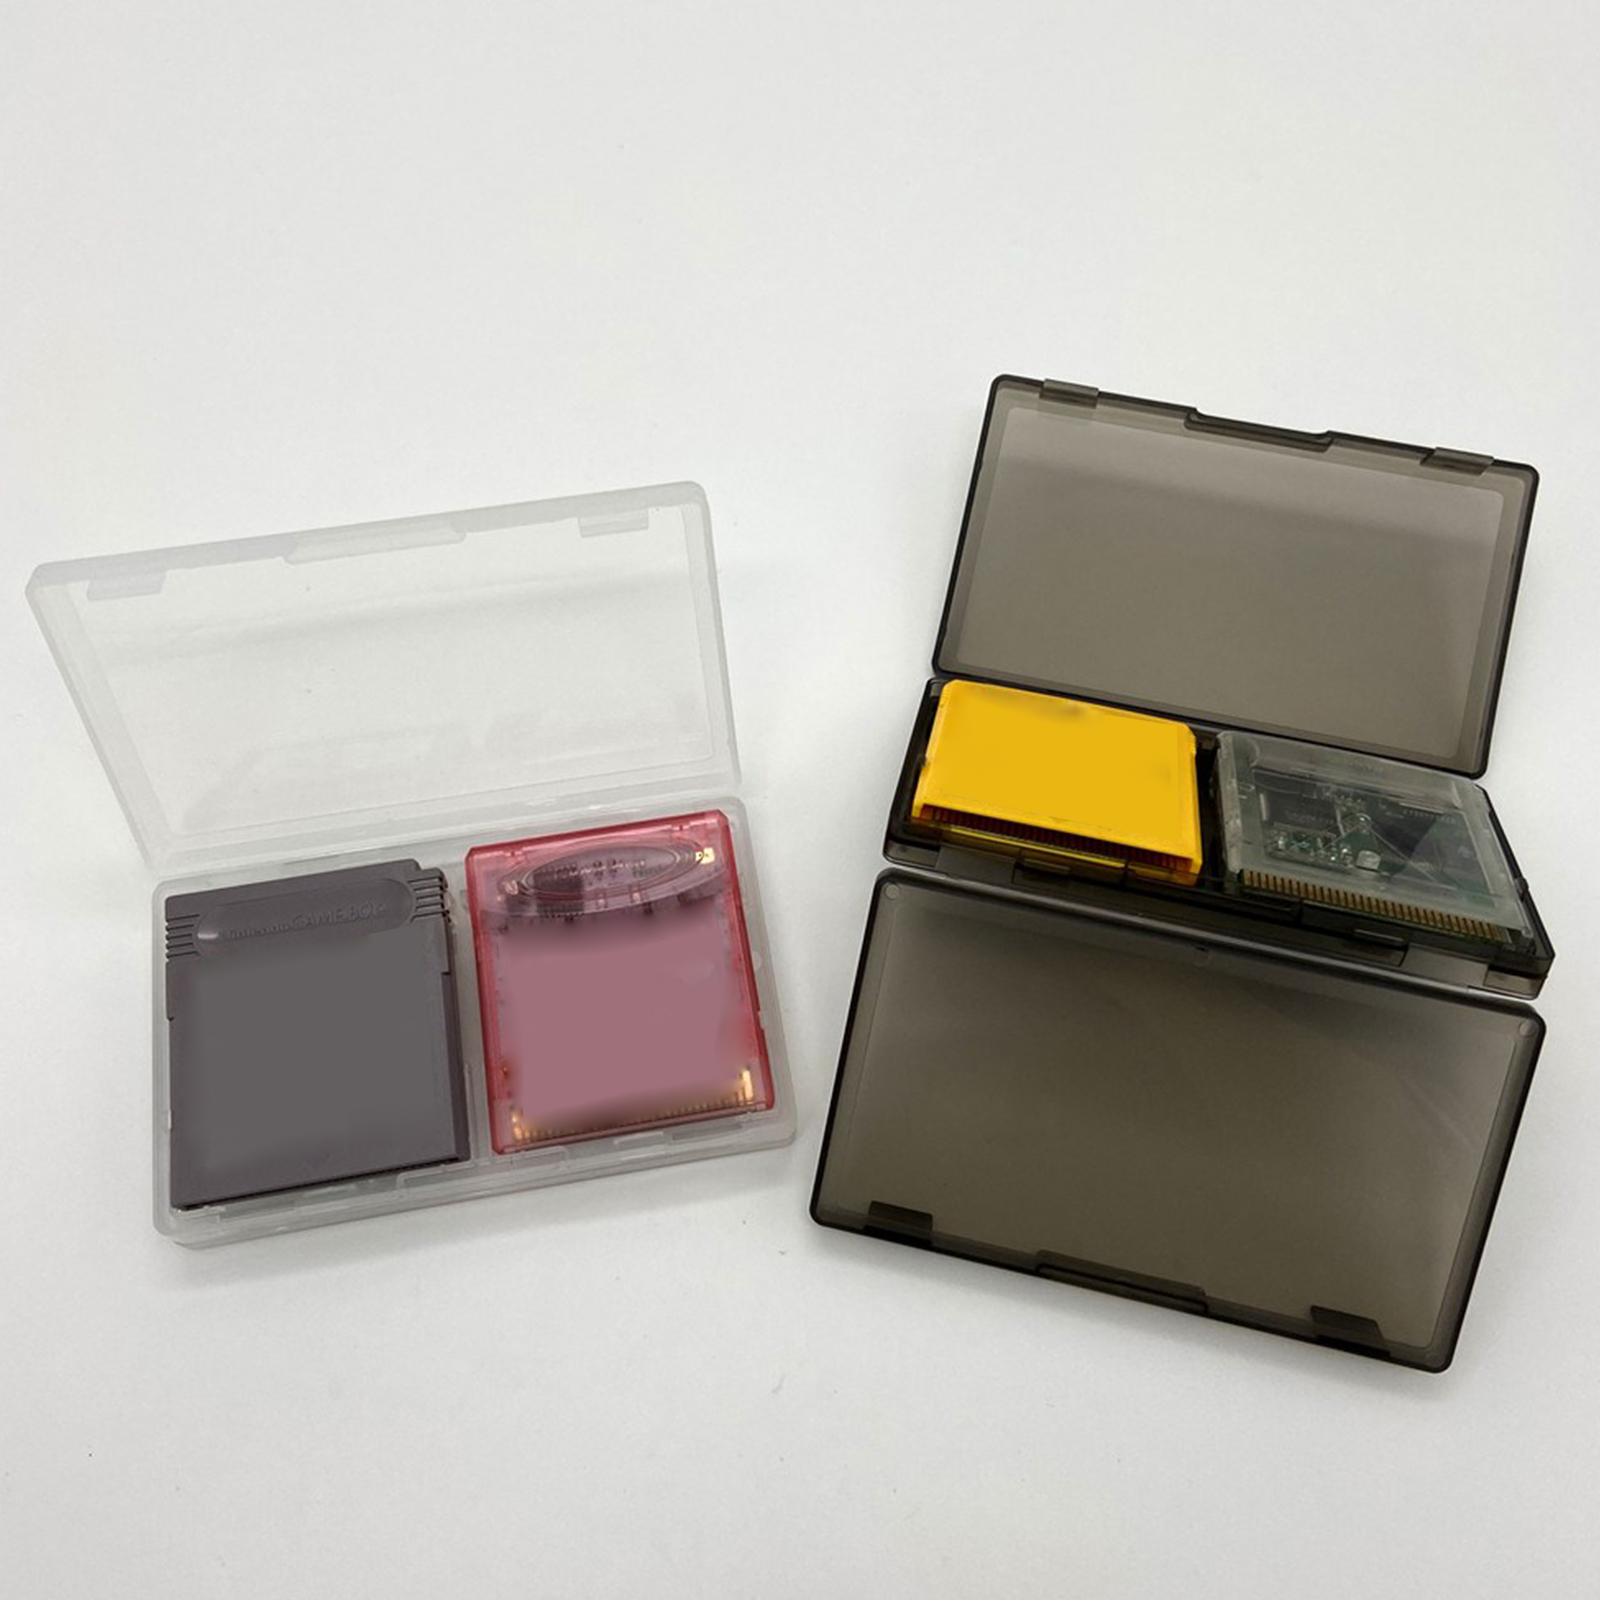 Portable Game Storage Box for Nintend Gameboy <font><b>GB</b></font> 6 Grid Cards Holder Carrying <font><b>Case</b></font> Game Accessories image